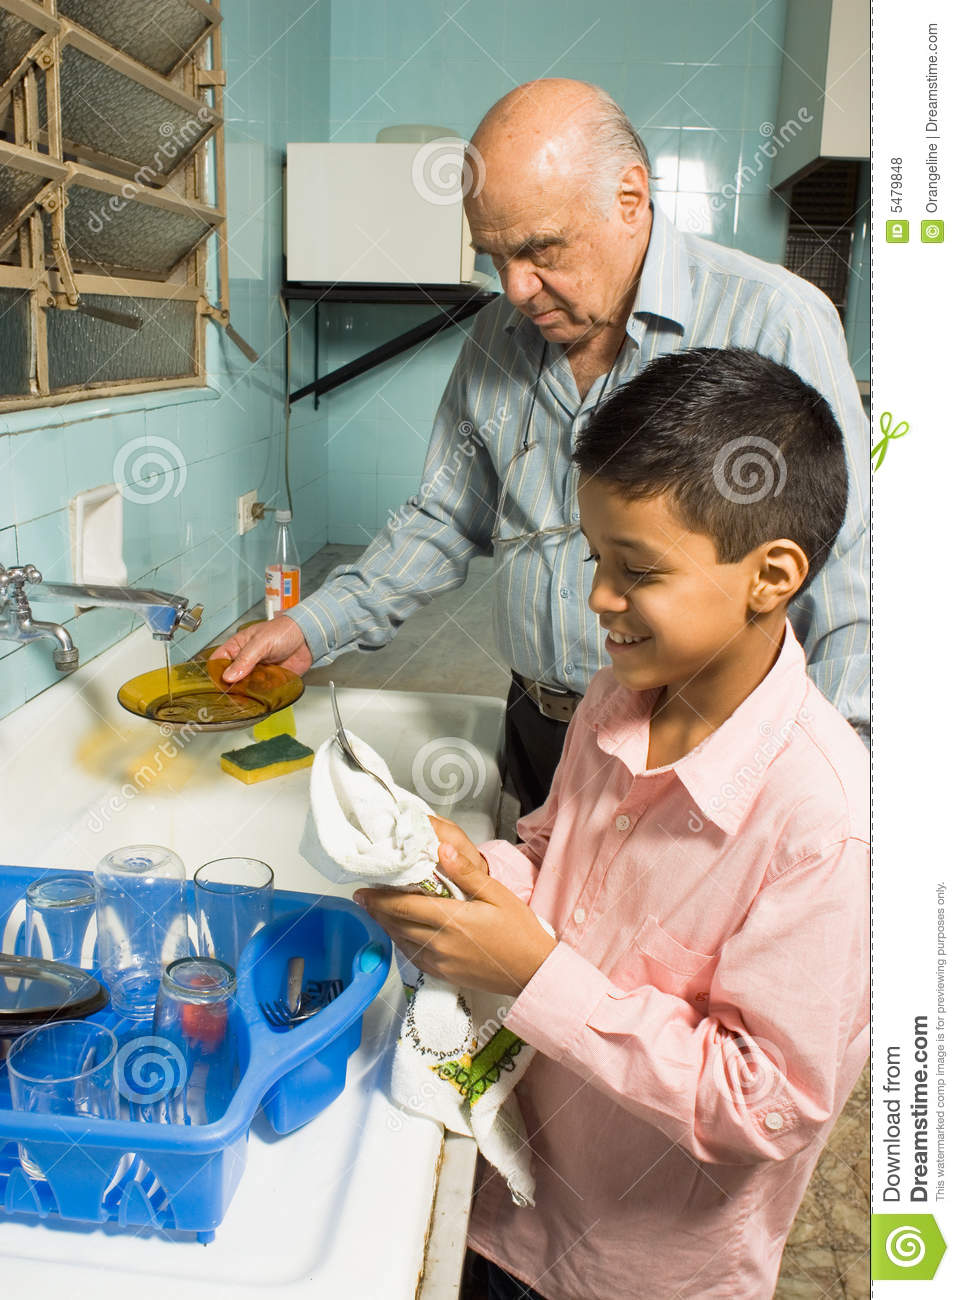 Grandfather and grandson washing dishes - Vertical